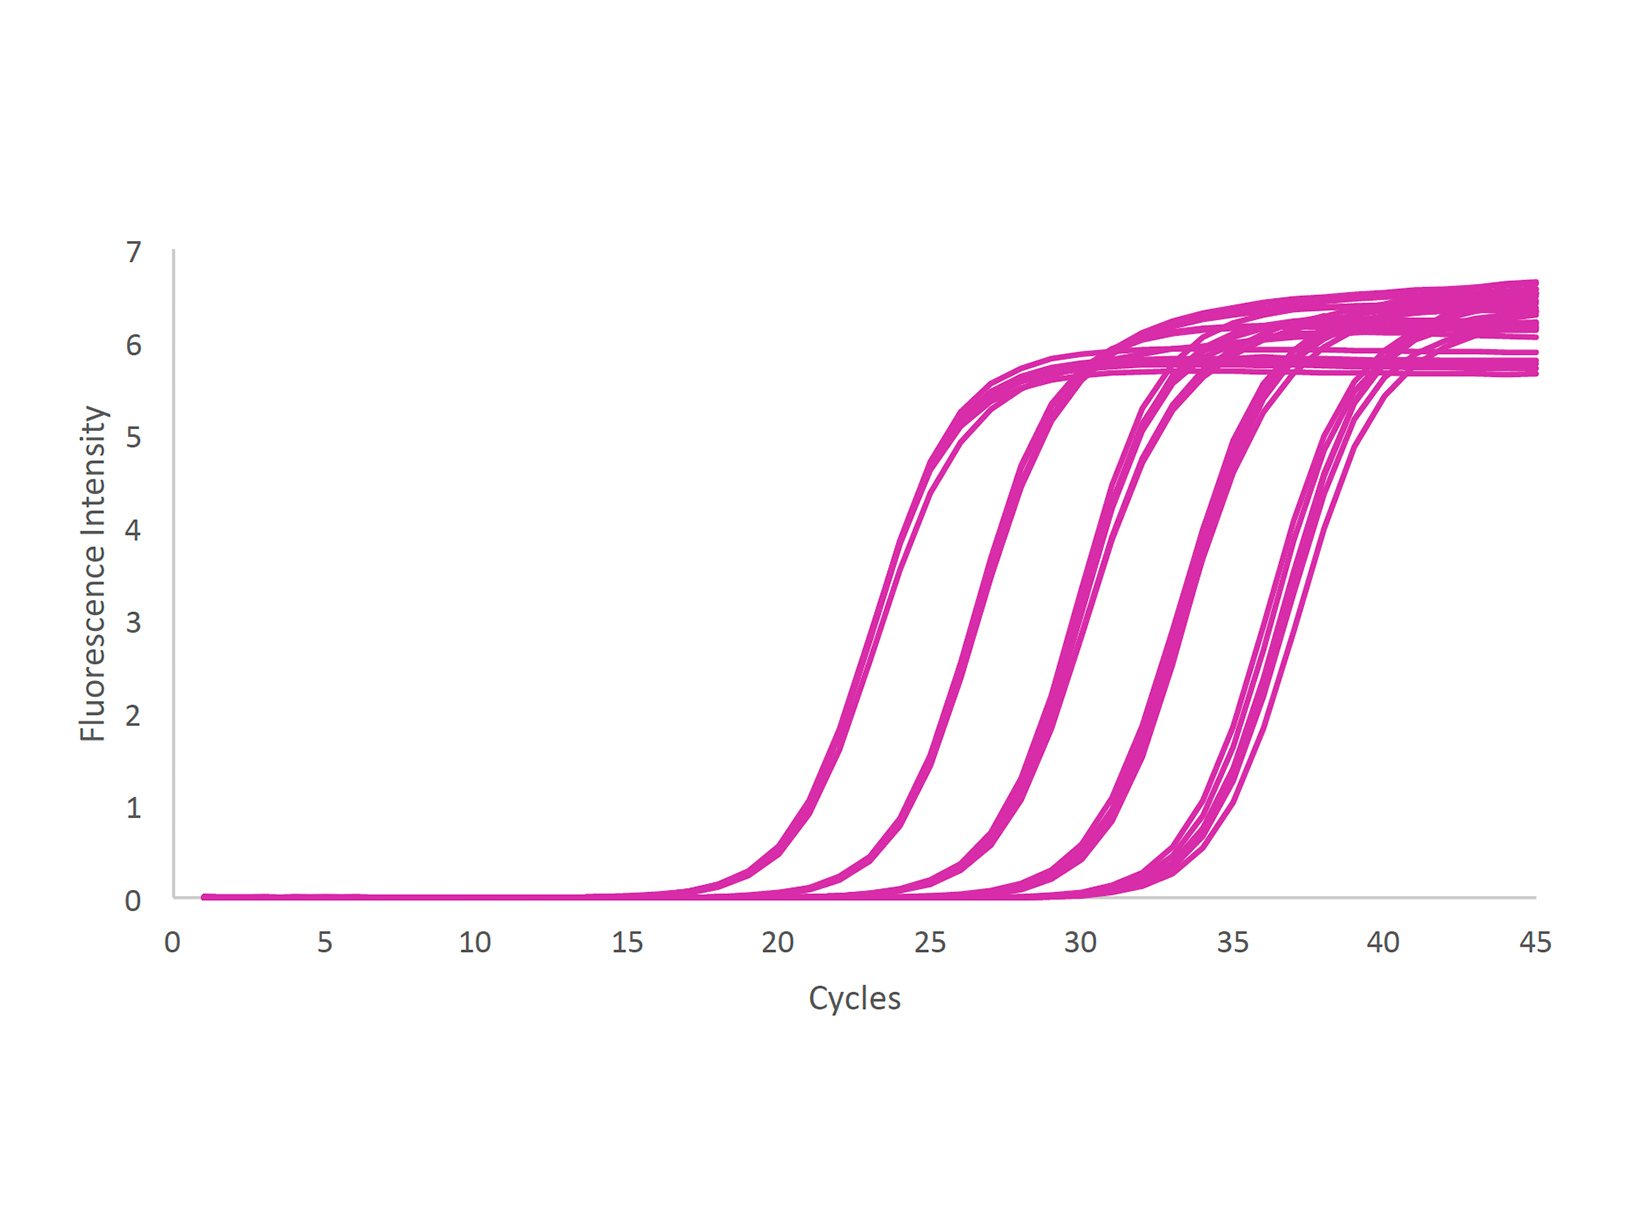 qPCR trace following cDNA synthesis from mouse total RNA serial dilution with qPCRBIO cDNA Synthesis Kit